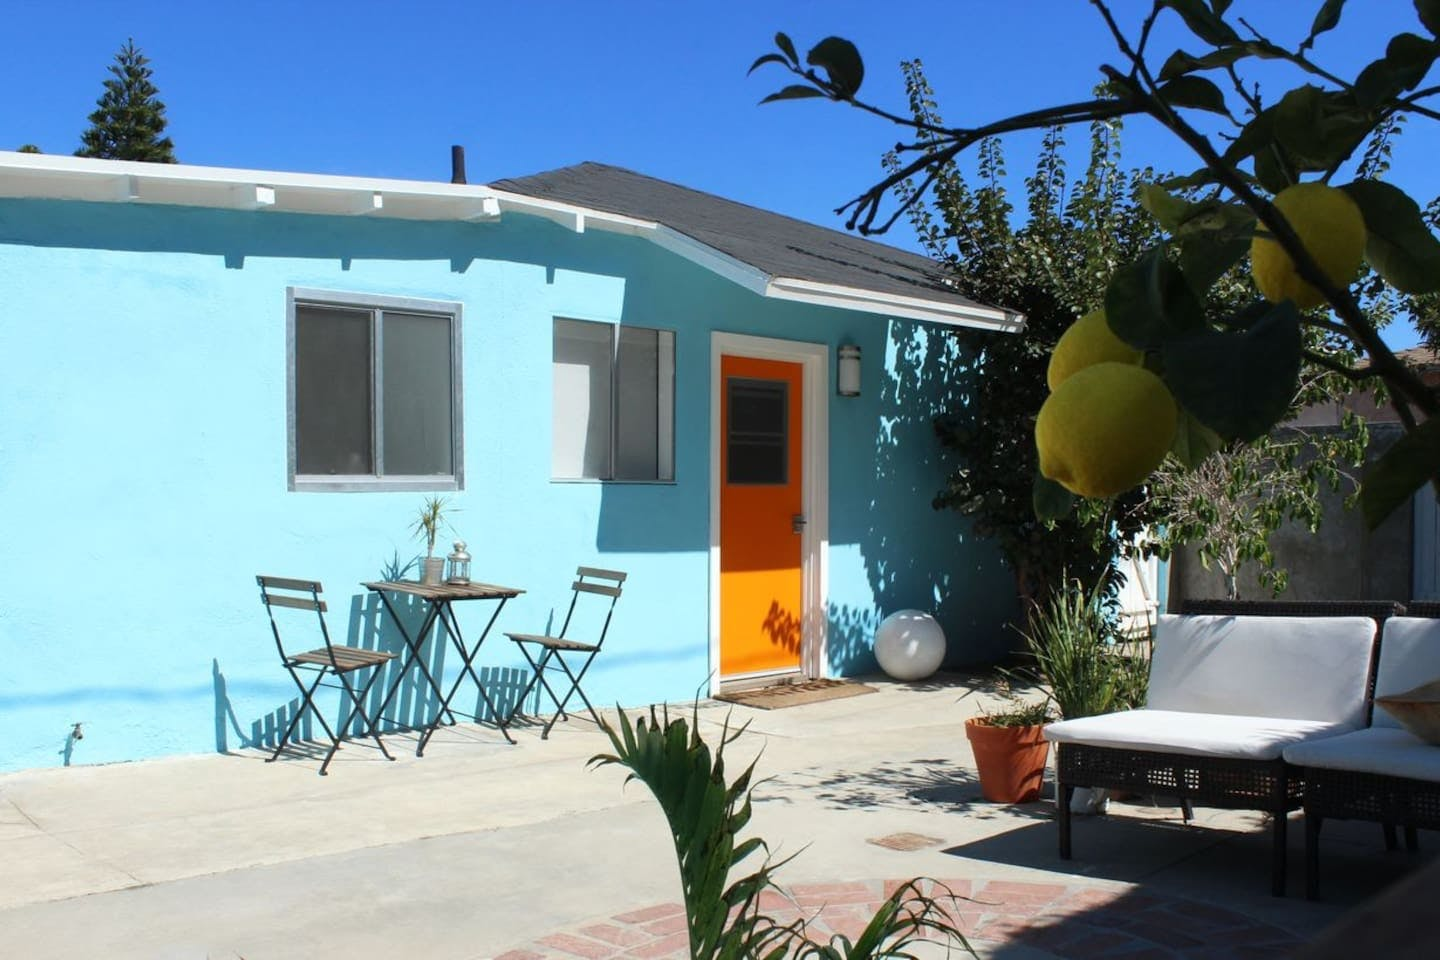 los angeles airbnb tips 2